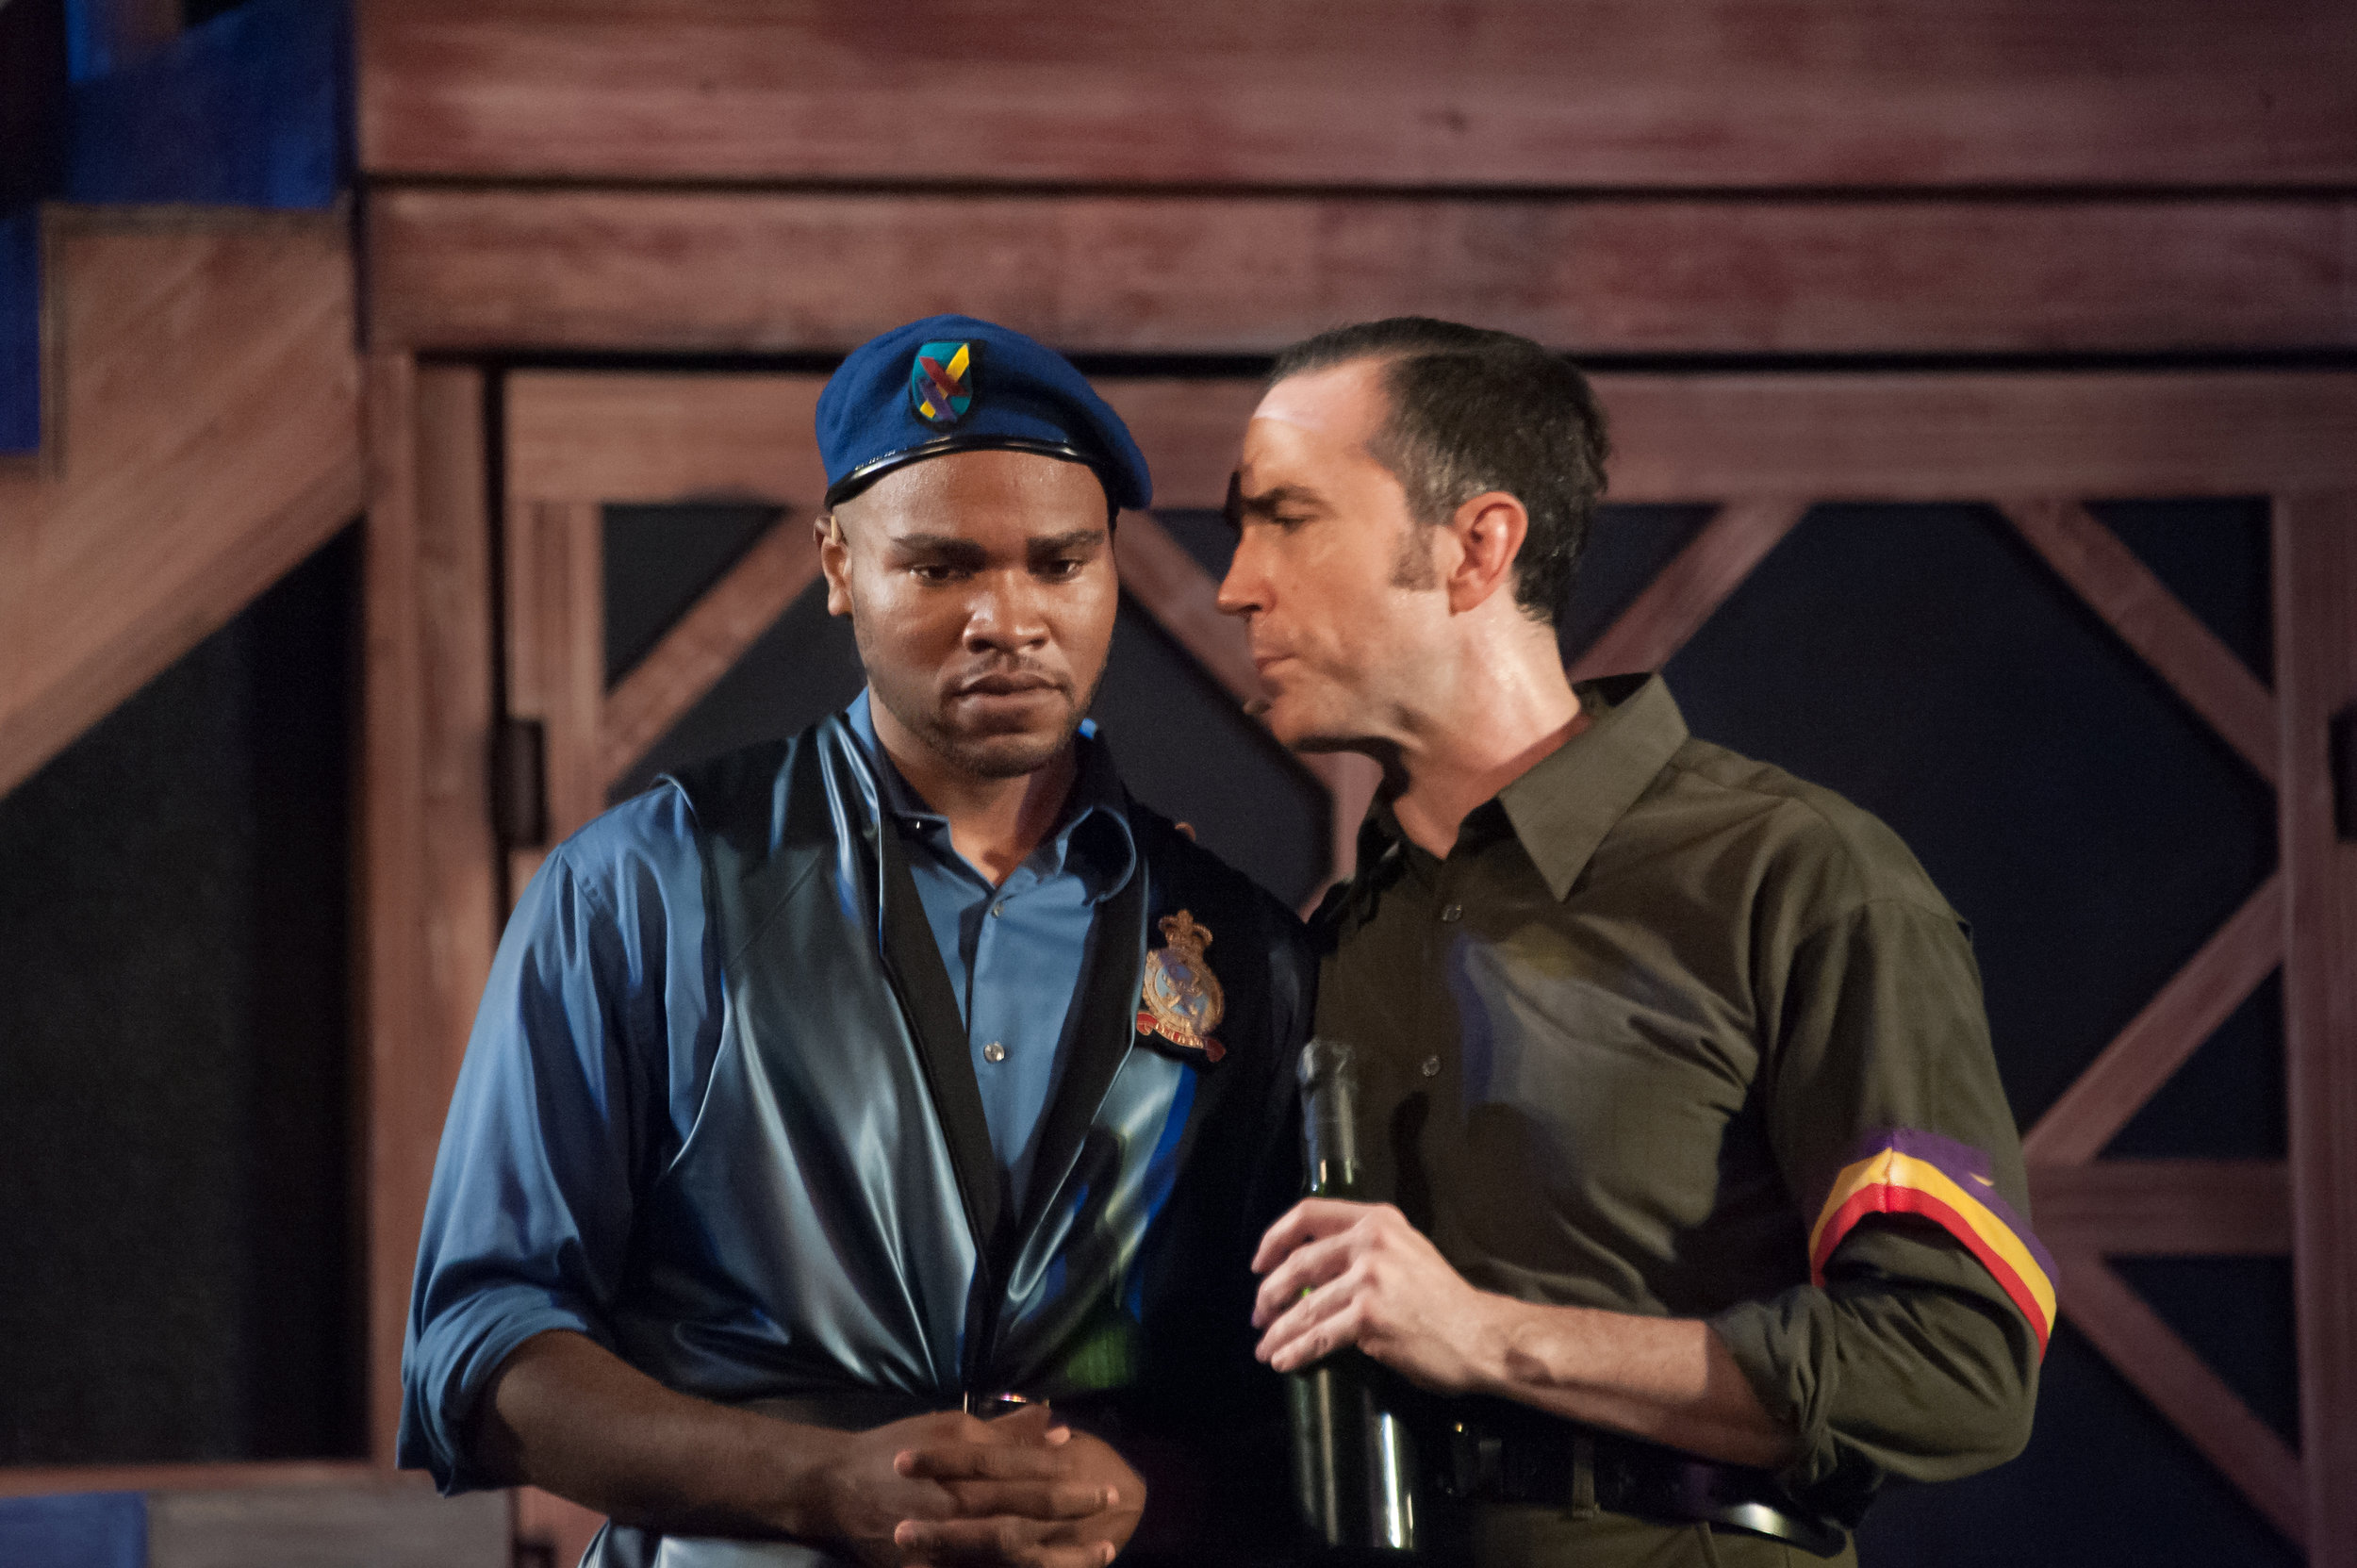 SD 097 OTHELLO 2018a.jpg